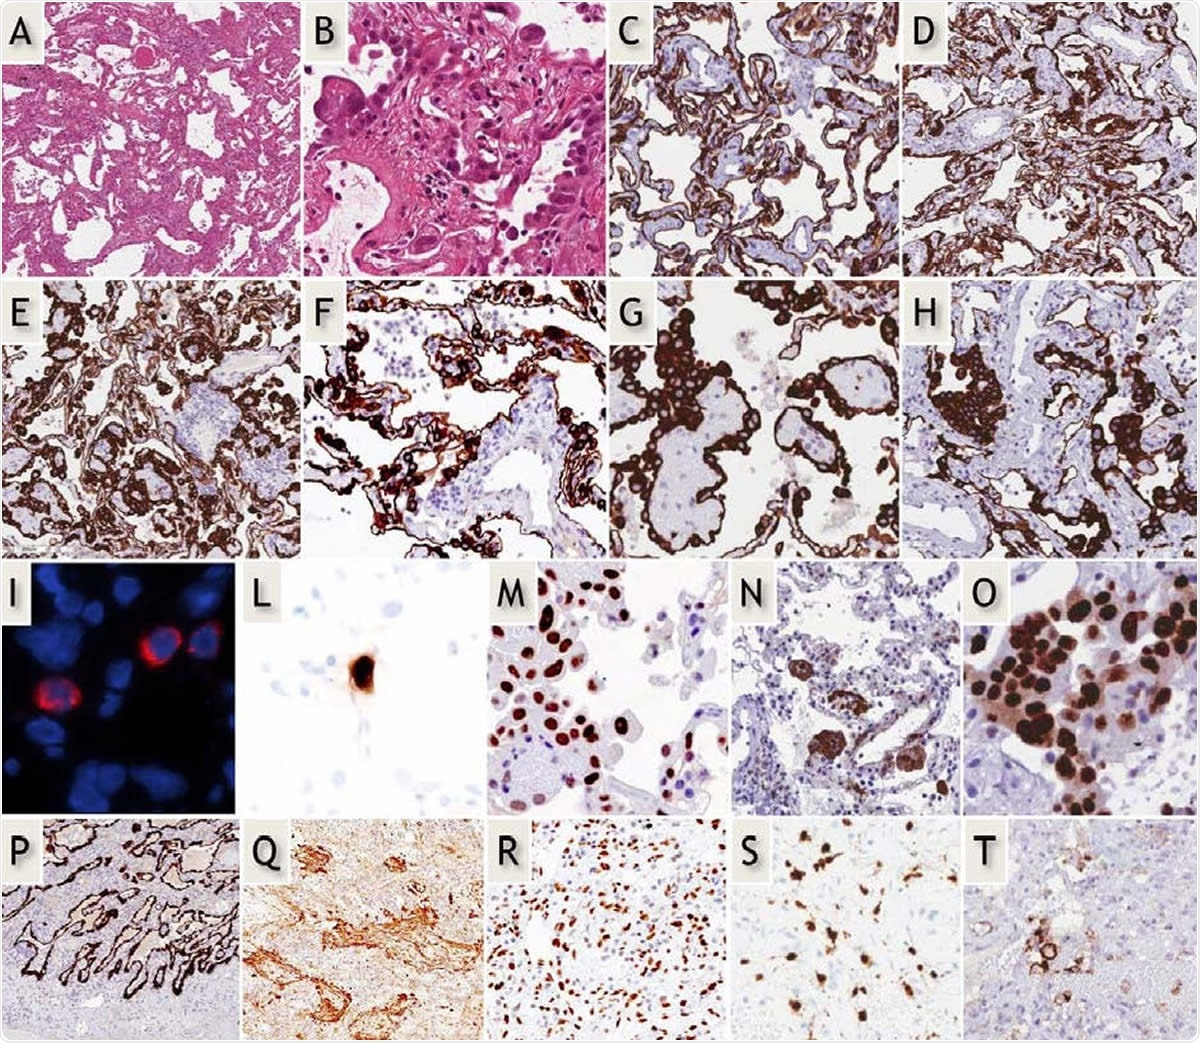 "Early-phase COVID-19 pneumonia. H&E (A,B): Parenchymal structure is variably altered by AECII hyperplasia, vascular enlargement and interstitial thickening. CK7 (G-H): AECII form variable small nodules, aggregates and pseudo-papillary sprouts. Grade-1 (C,D) and -2 (E-H) Covid-19 histological patterns were defined by the extent of AEC II hyperplasia. In situ demonstration of AECII infected by SARS-CoV-2 (I): cytoplasmic (red) signals are evidenced in scattered cells recognized as AECII by morphology and location. In situ analysis of IL-6 mRNA expression (L): strong signal is evidenced in scattered AECII. Ph-STAT3 immunohistochemistry (M): strong signal demonstrated in most AECII. TBB3 immunohistochemistry (N): strong signal in AECII. Interstitial dilated spaces are negative. Ki67 immunohistochemistry (O): elevated (>50%) proliferation in AECII. Late-phase Covid-19 pneumonia. CK7 (P): typical DAD-presentation with homogeneous ""lepidic"" alveolar covering by AECII. TBB3 (Q) strong reaction in myofibroblast-rich areas. phSTAT3 (R): diffuse nuclear expression in AECII, macrophages and stromal cells. IL-6 mRNA in-situ (S): increased numbers of positive cells. PD-L1 (T): negative results in most blood vessels."